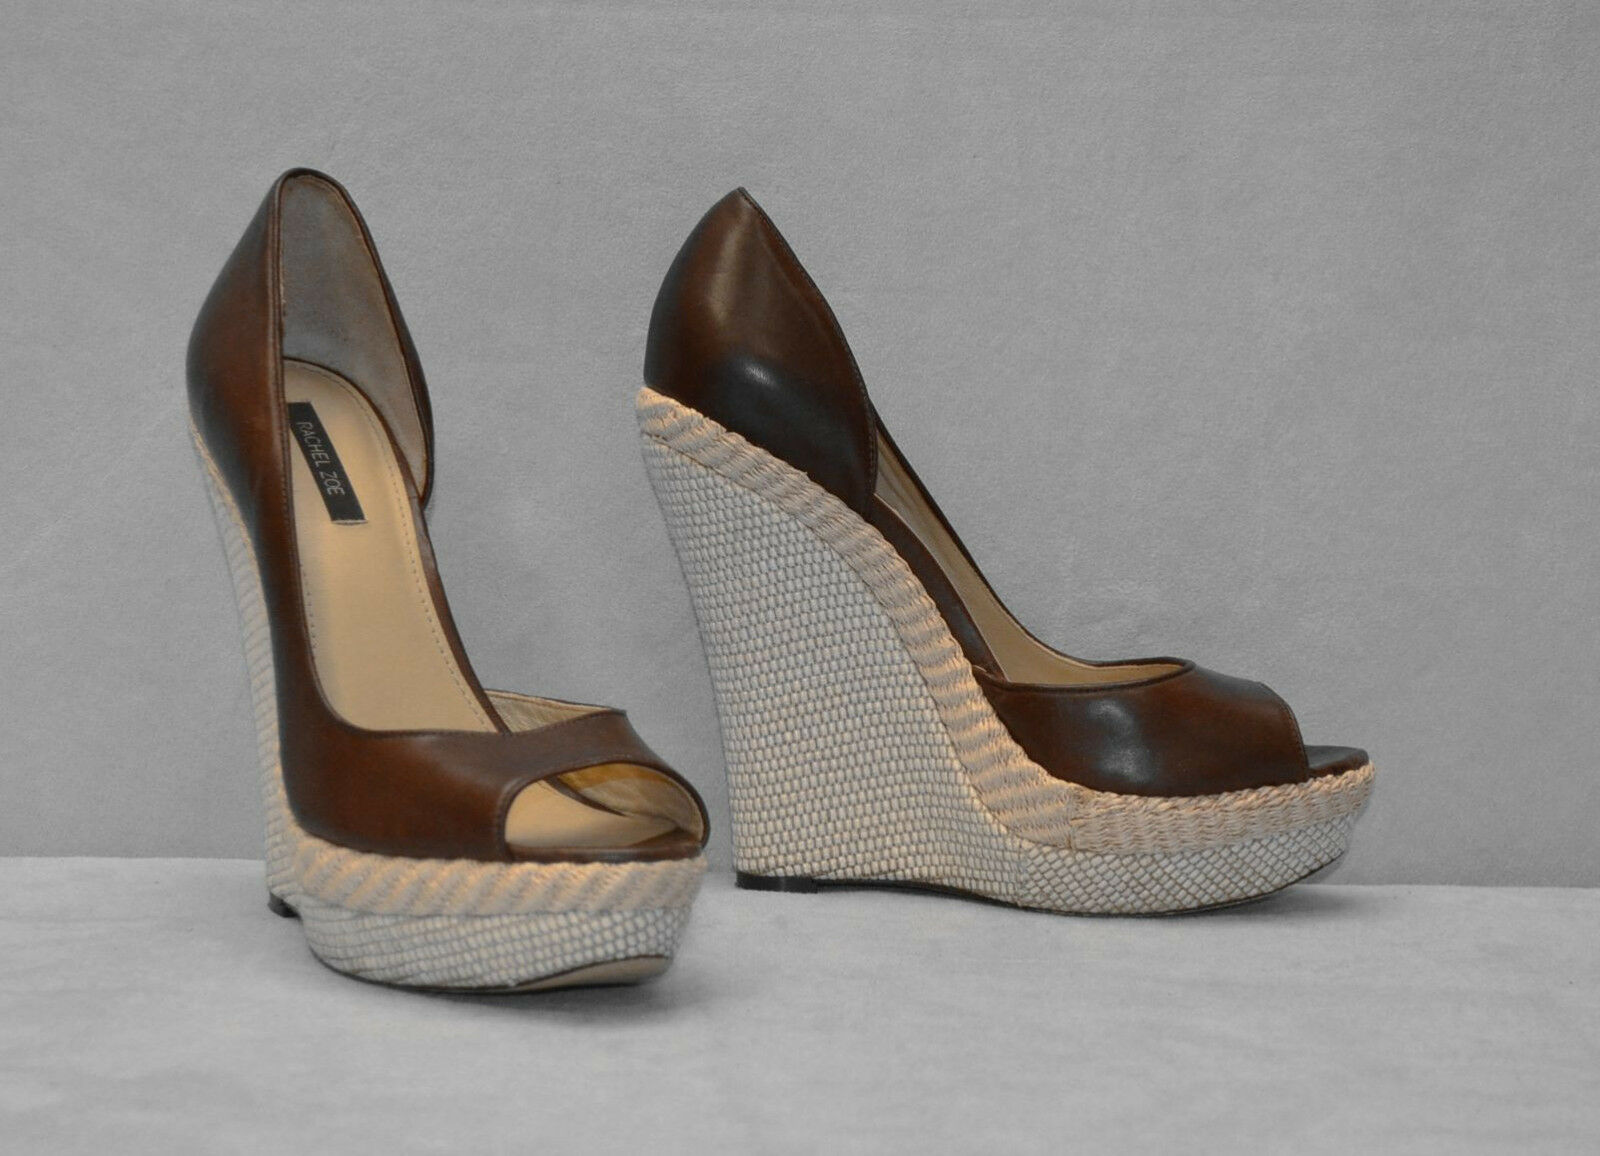 C0 Auth RACHEL ZOE Brown Leather Open Toe High Woven Wedge Shoes Size 8 M